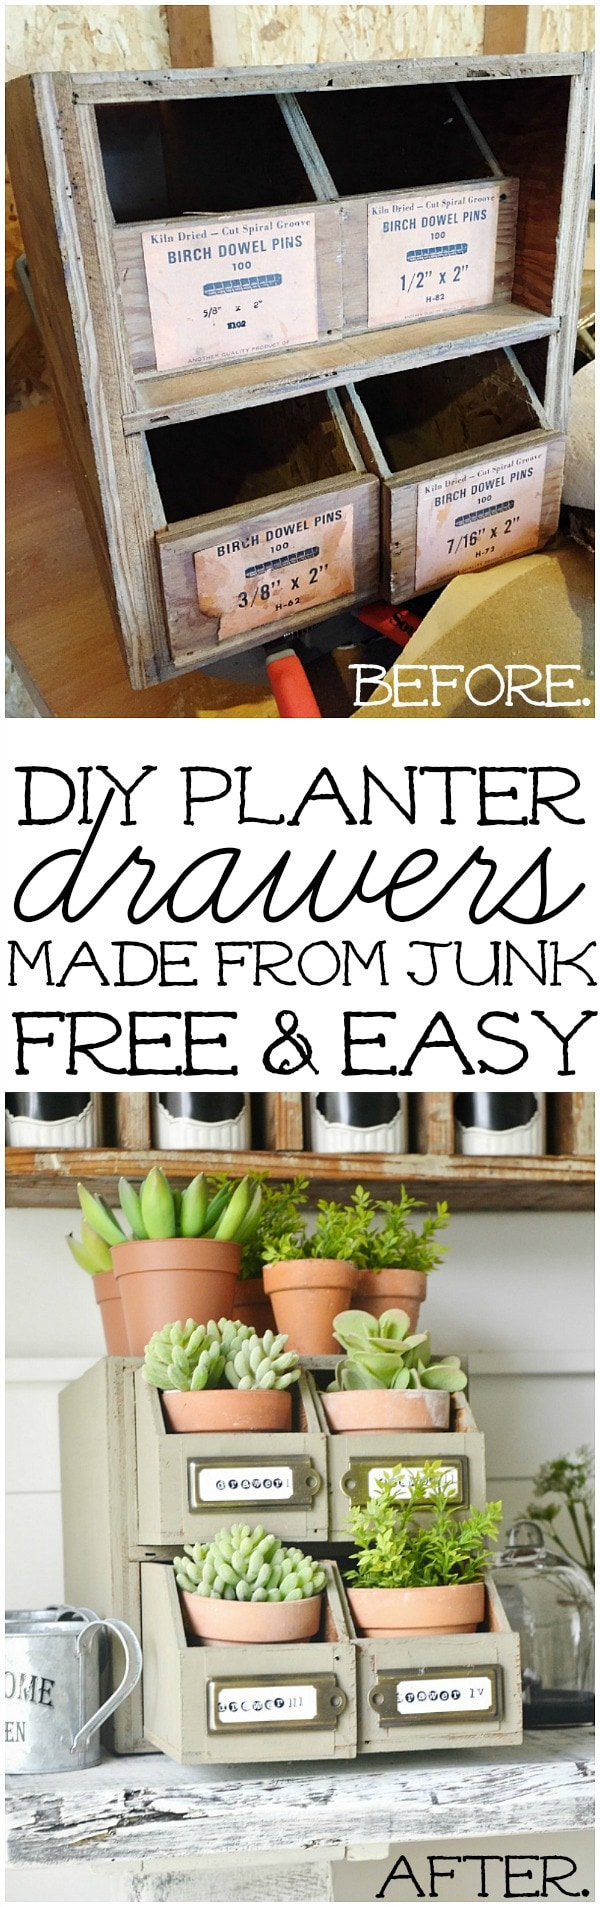 DIY Planter Drawers made from Junk